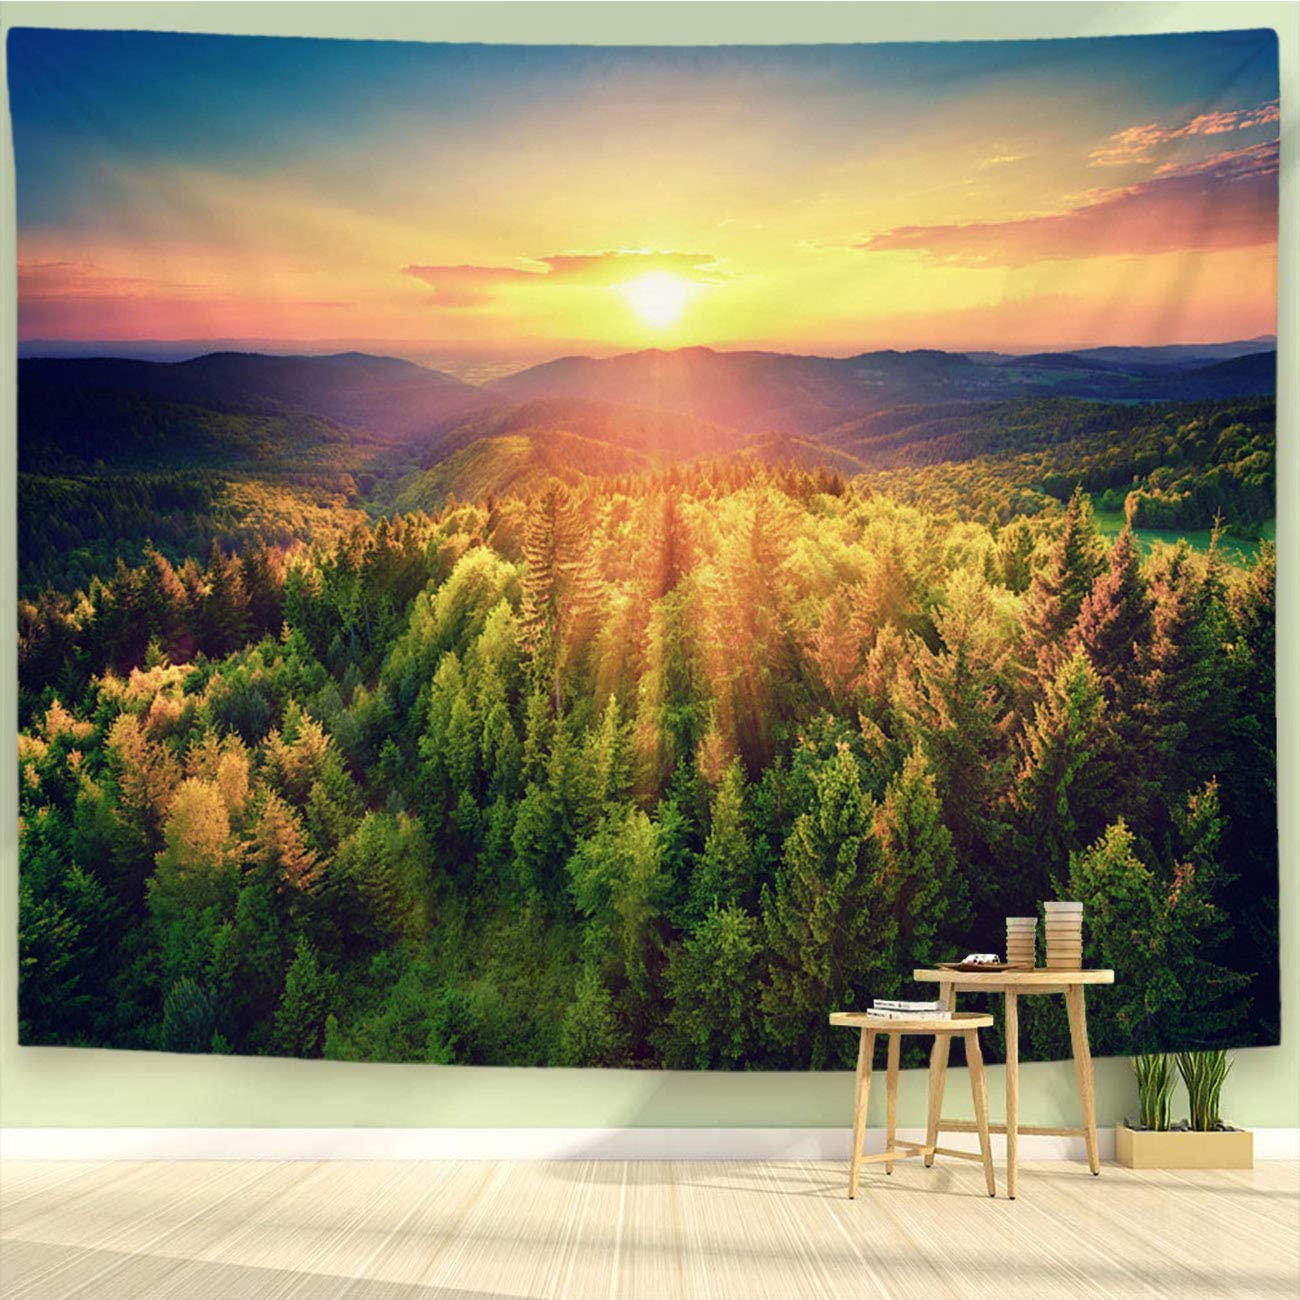 BEIVIVI Sunset Tapestry,Colorful Art Design Tapestry,Scenic Sunset Over The Forest,Polyester Fabric Tapestries for Bedroom Living Room Dorm,90x70in